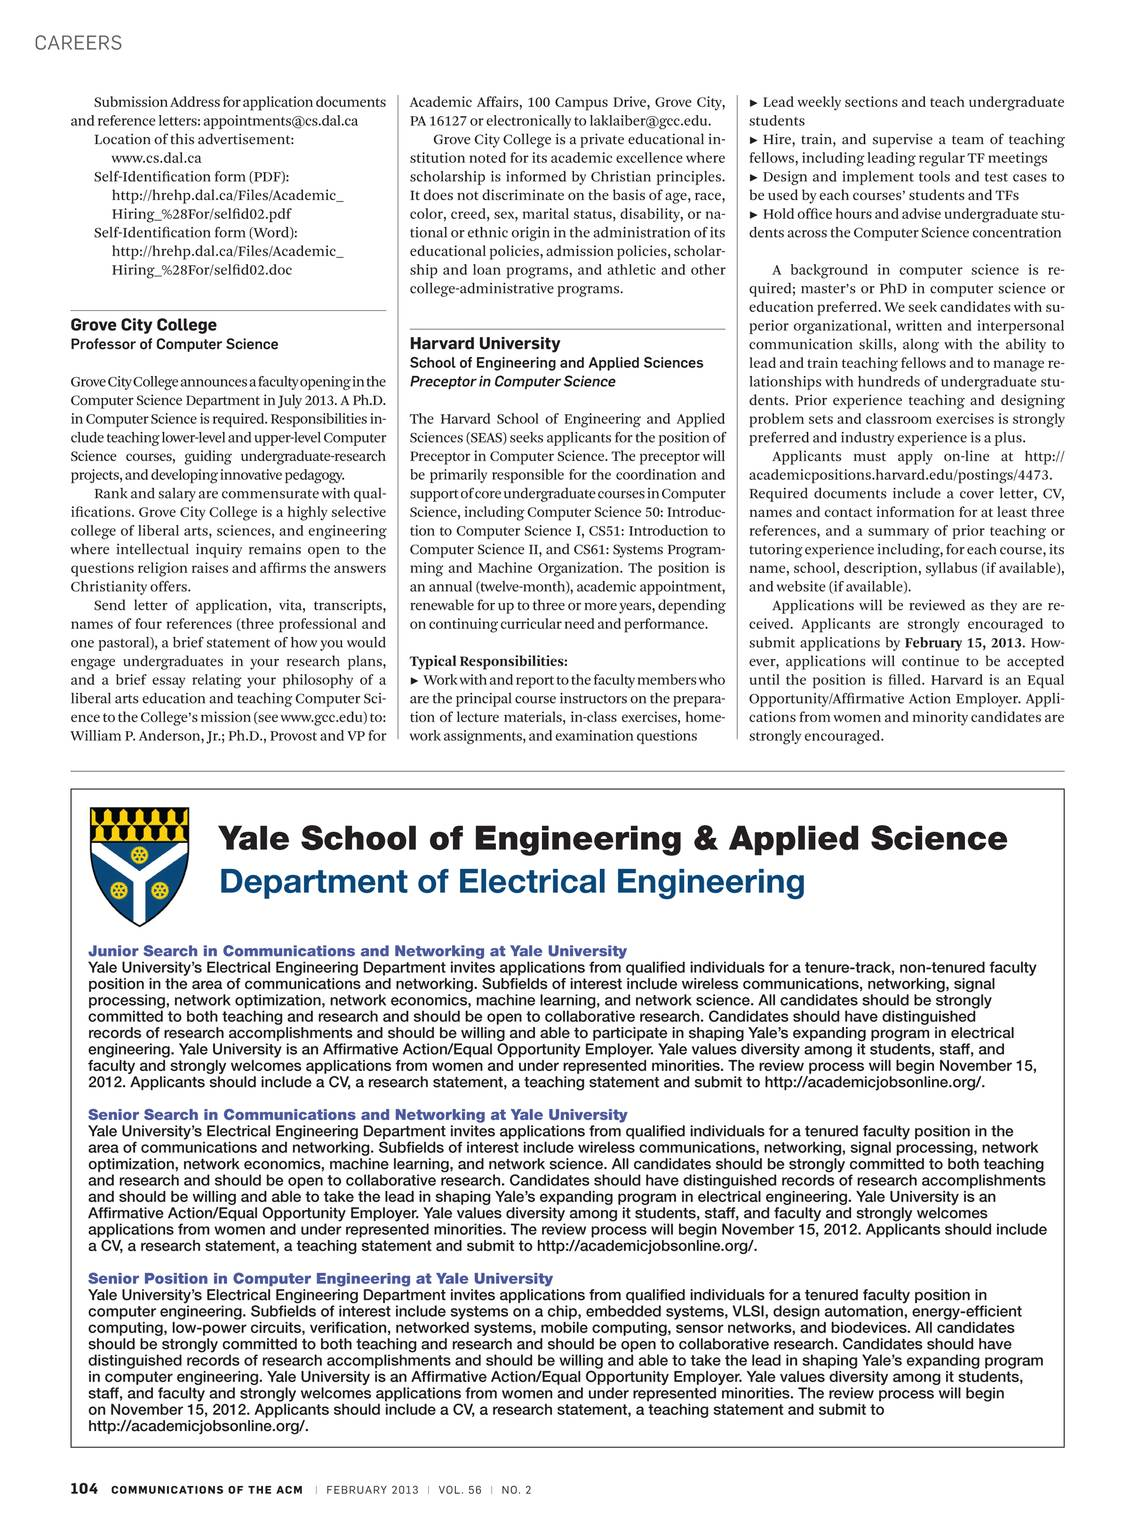 Communications - February 2013 - page 103